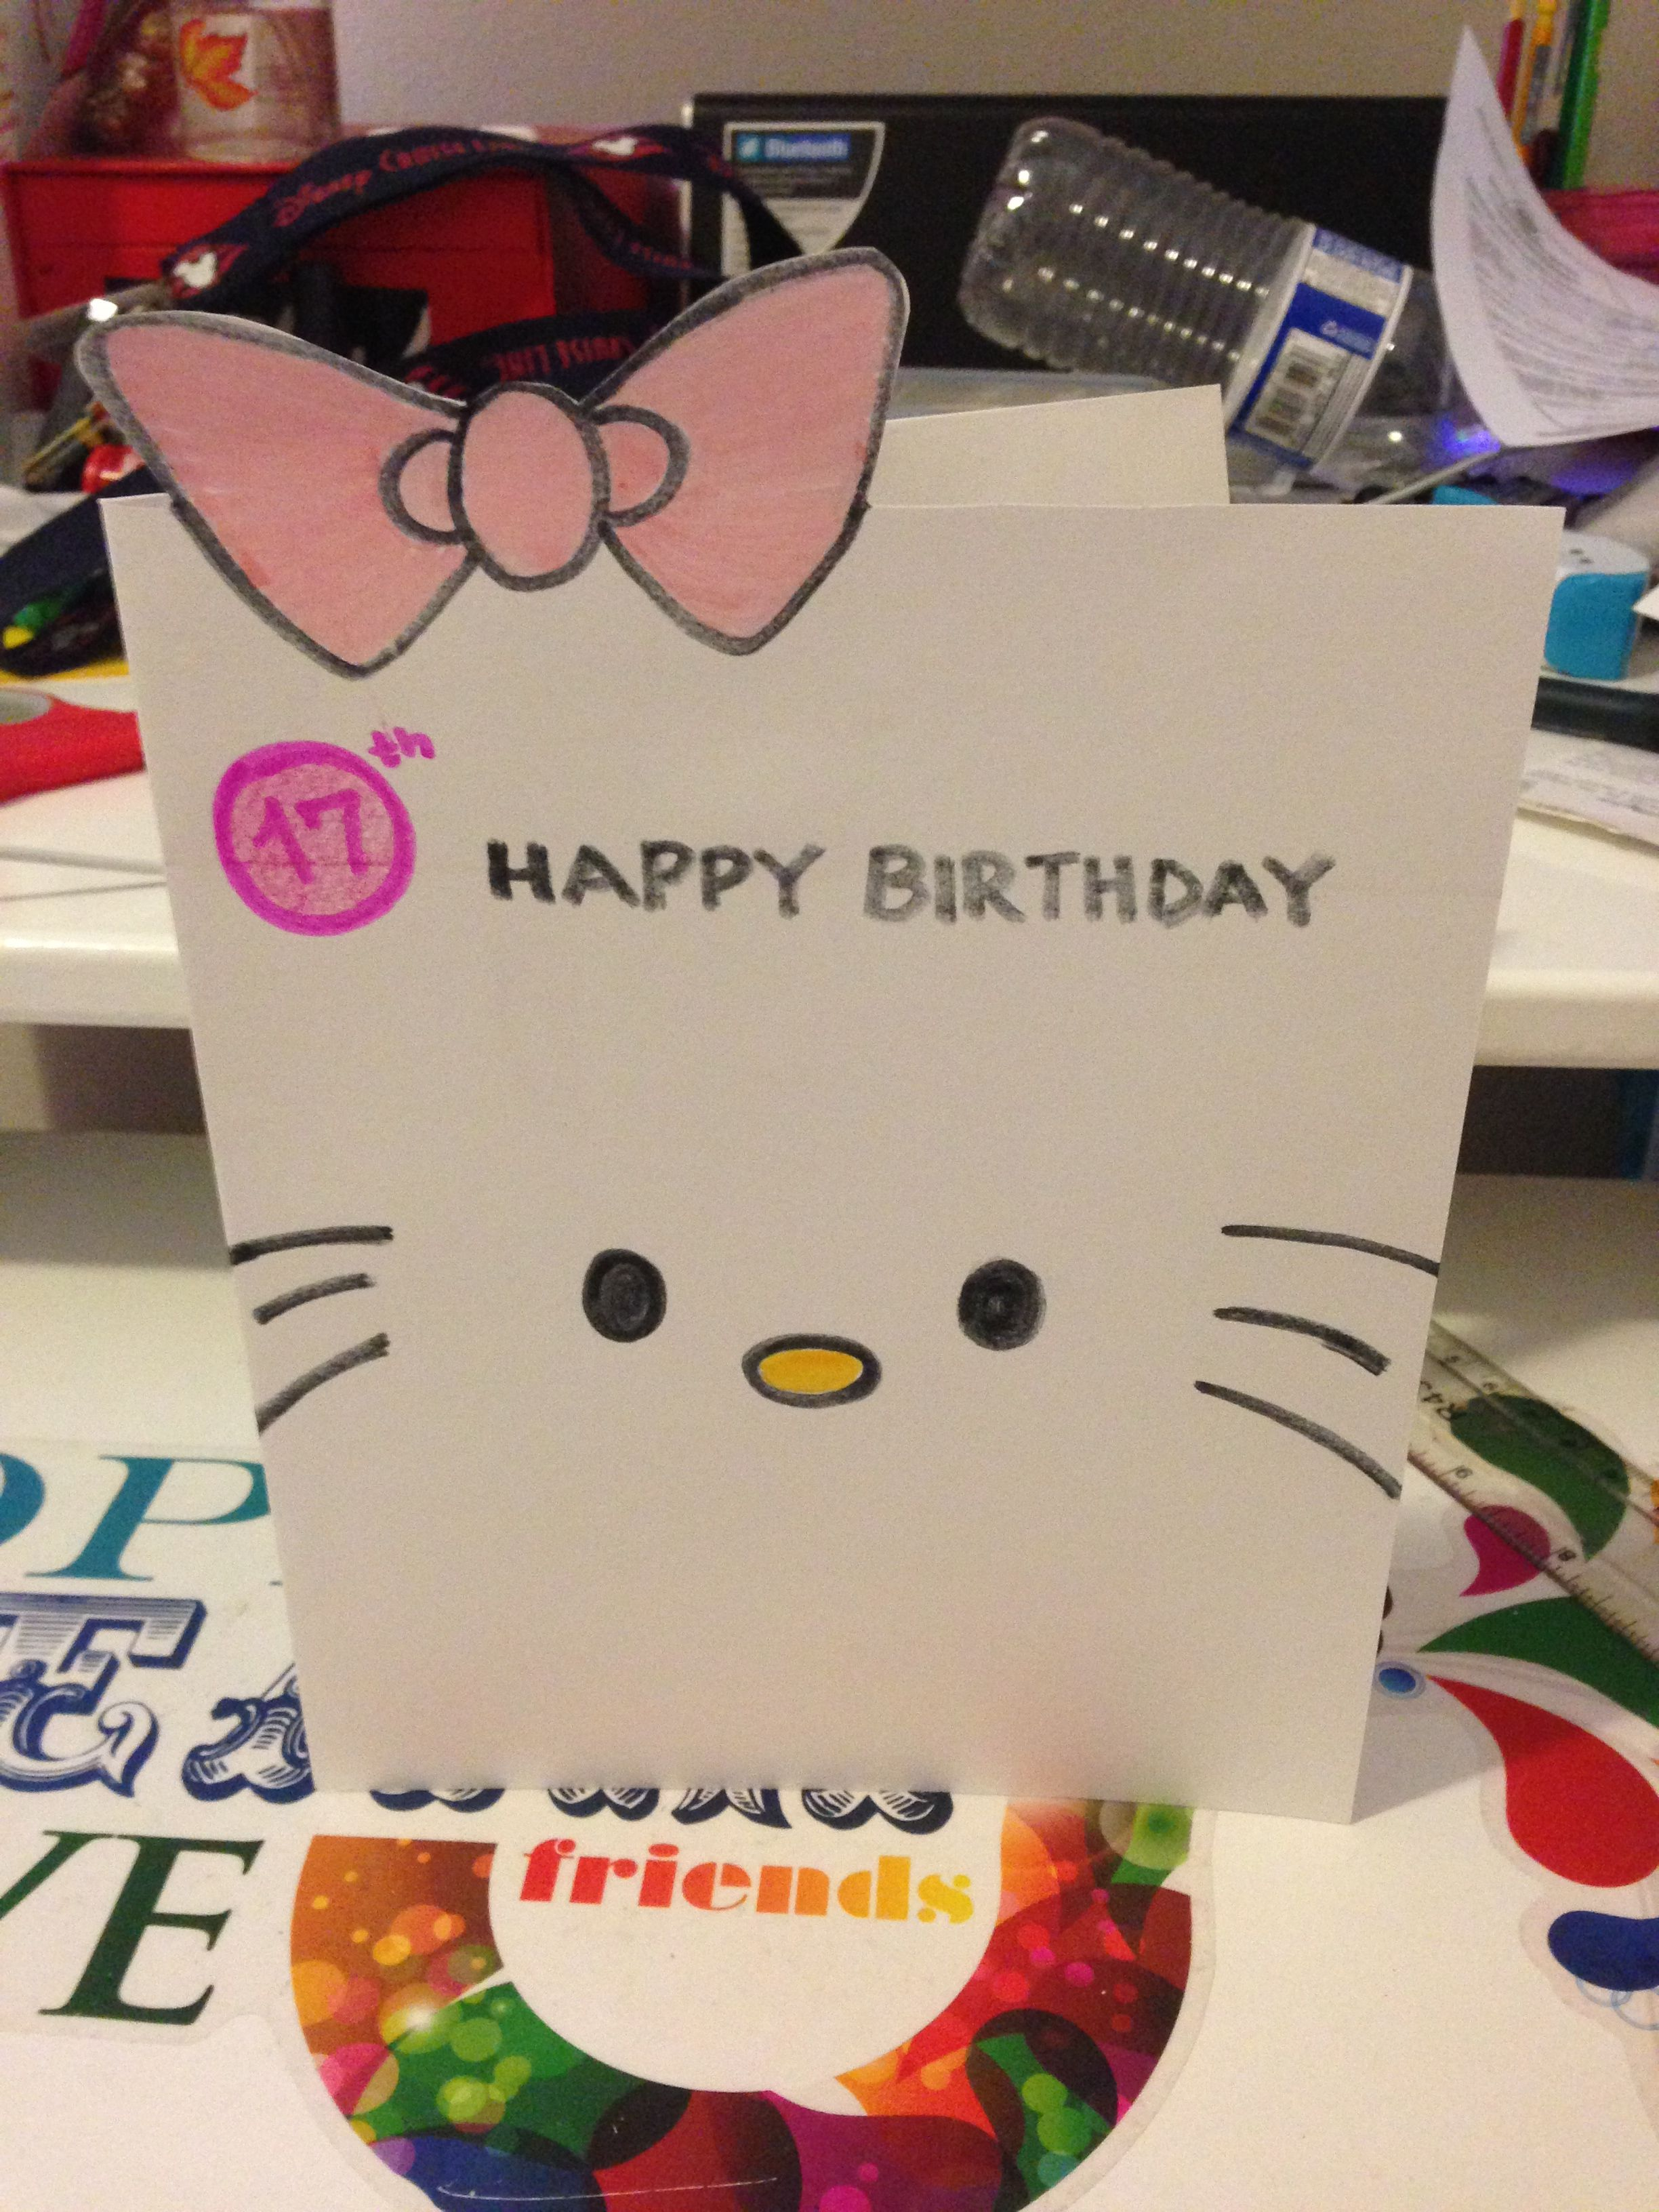 Here S My Diy Birthday Card For My Cousin Very Simple But I Thought It Was Really Cute And Yes I Know I Put Kids Birthday Cards Simple Cards Cards Handmade